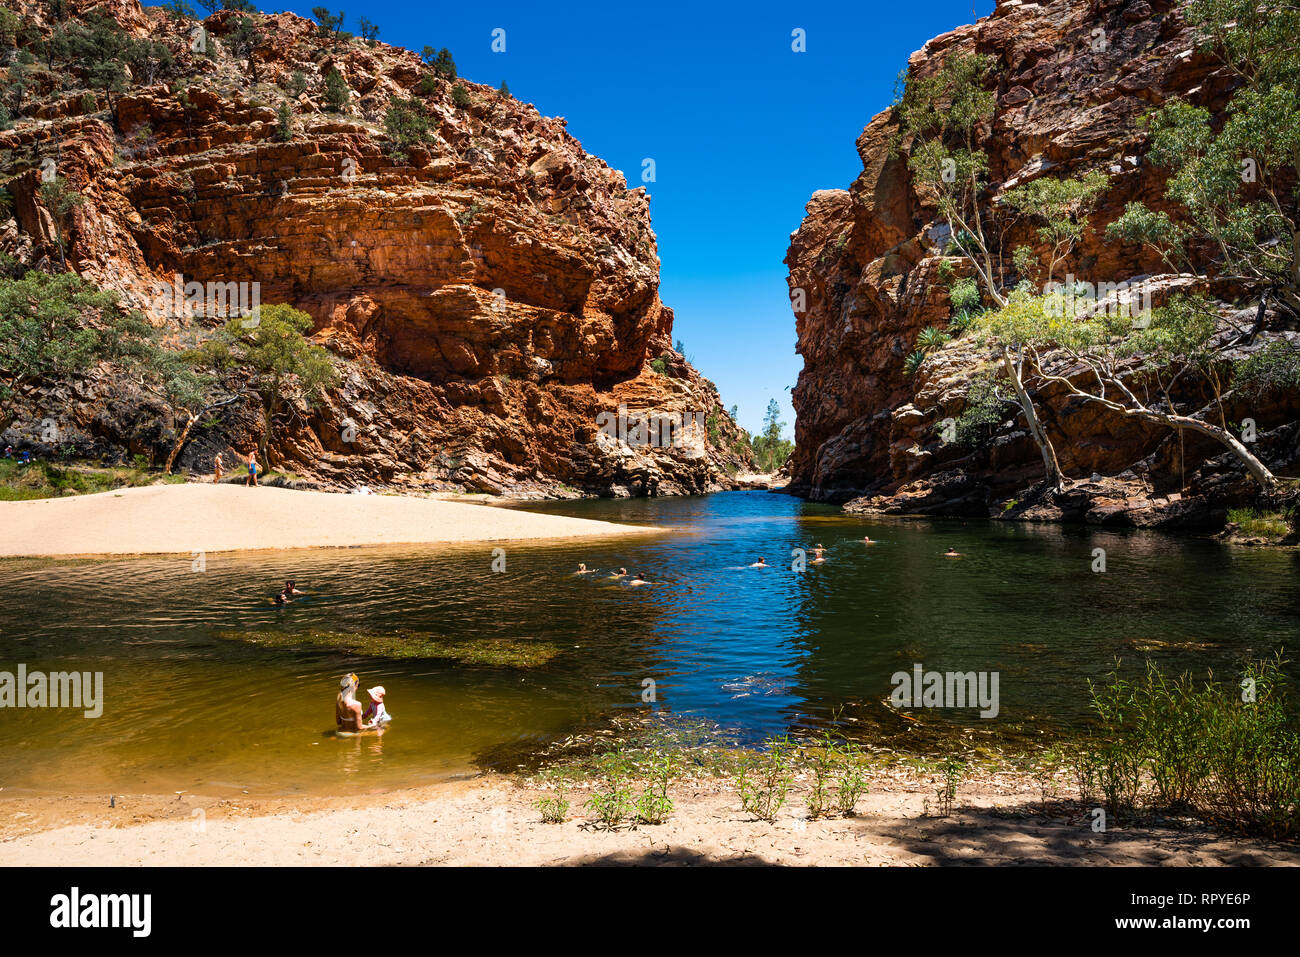 27th December 2018, NT Australia : People swimming in Ellery creek big hole in the West MacDonnell Ranges NT outback Australia - Stock Image